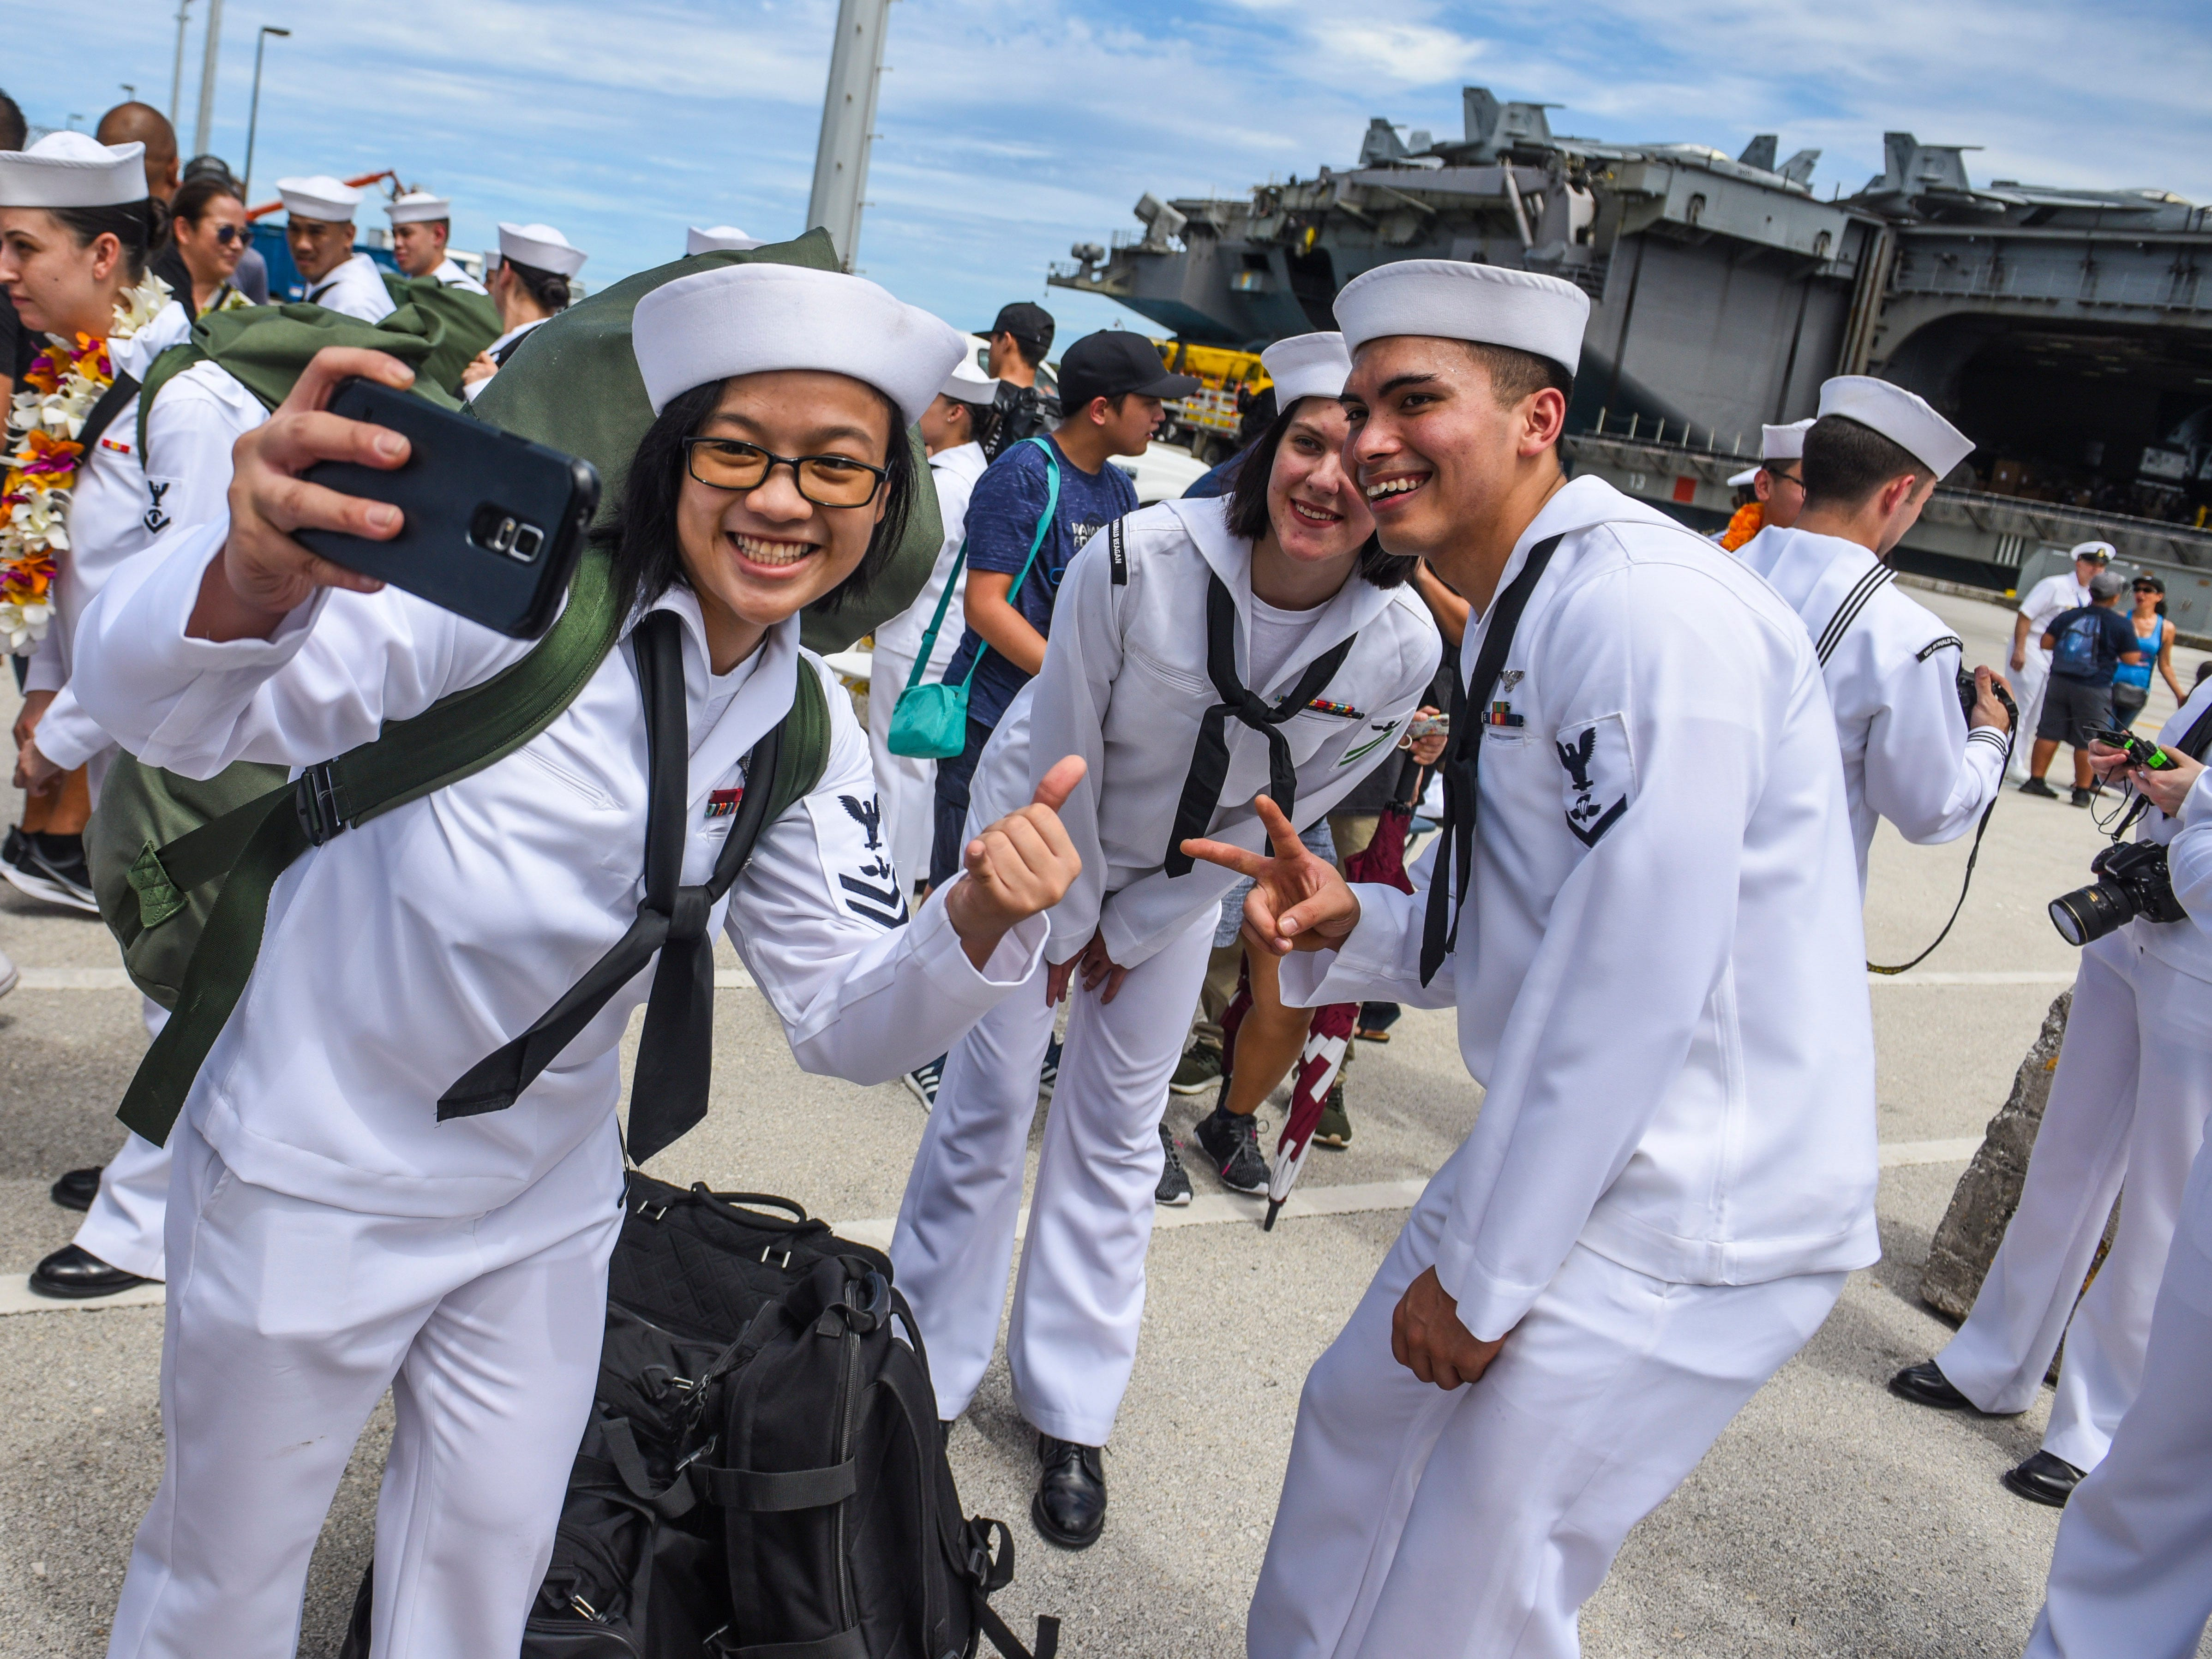 Navy sailors with Guam ties, serving aboard the Nimitz-class nuclear-powered aircraft carrier, USS Ronald Reagan, are greeted by family and friends during their arrival at the Kilo Wharf on Naval Base Guam in Sumay on Monday, Sept. 24, 2018. The vessel and its crew of nearly 5,000 sailors, normally forward-deployed at Yokosuka, Japan, is paying a port visit to the island.